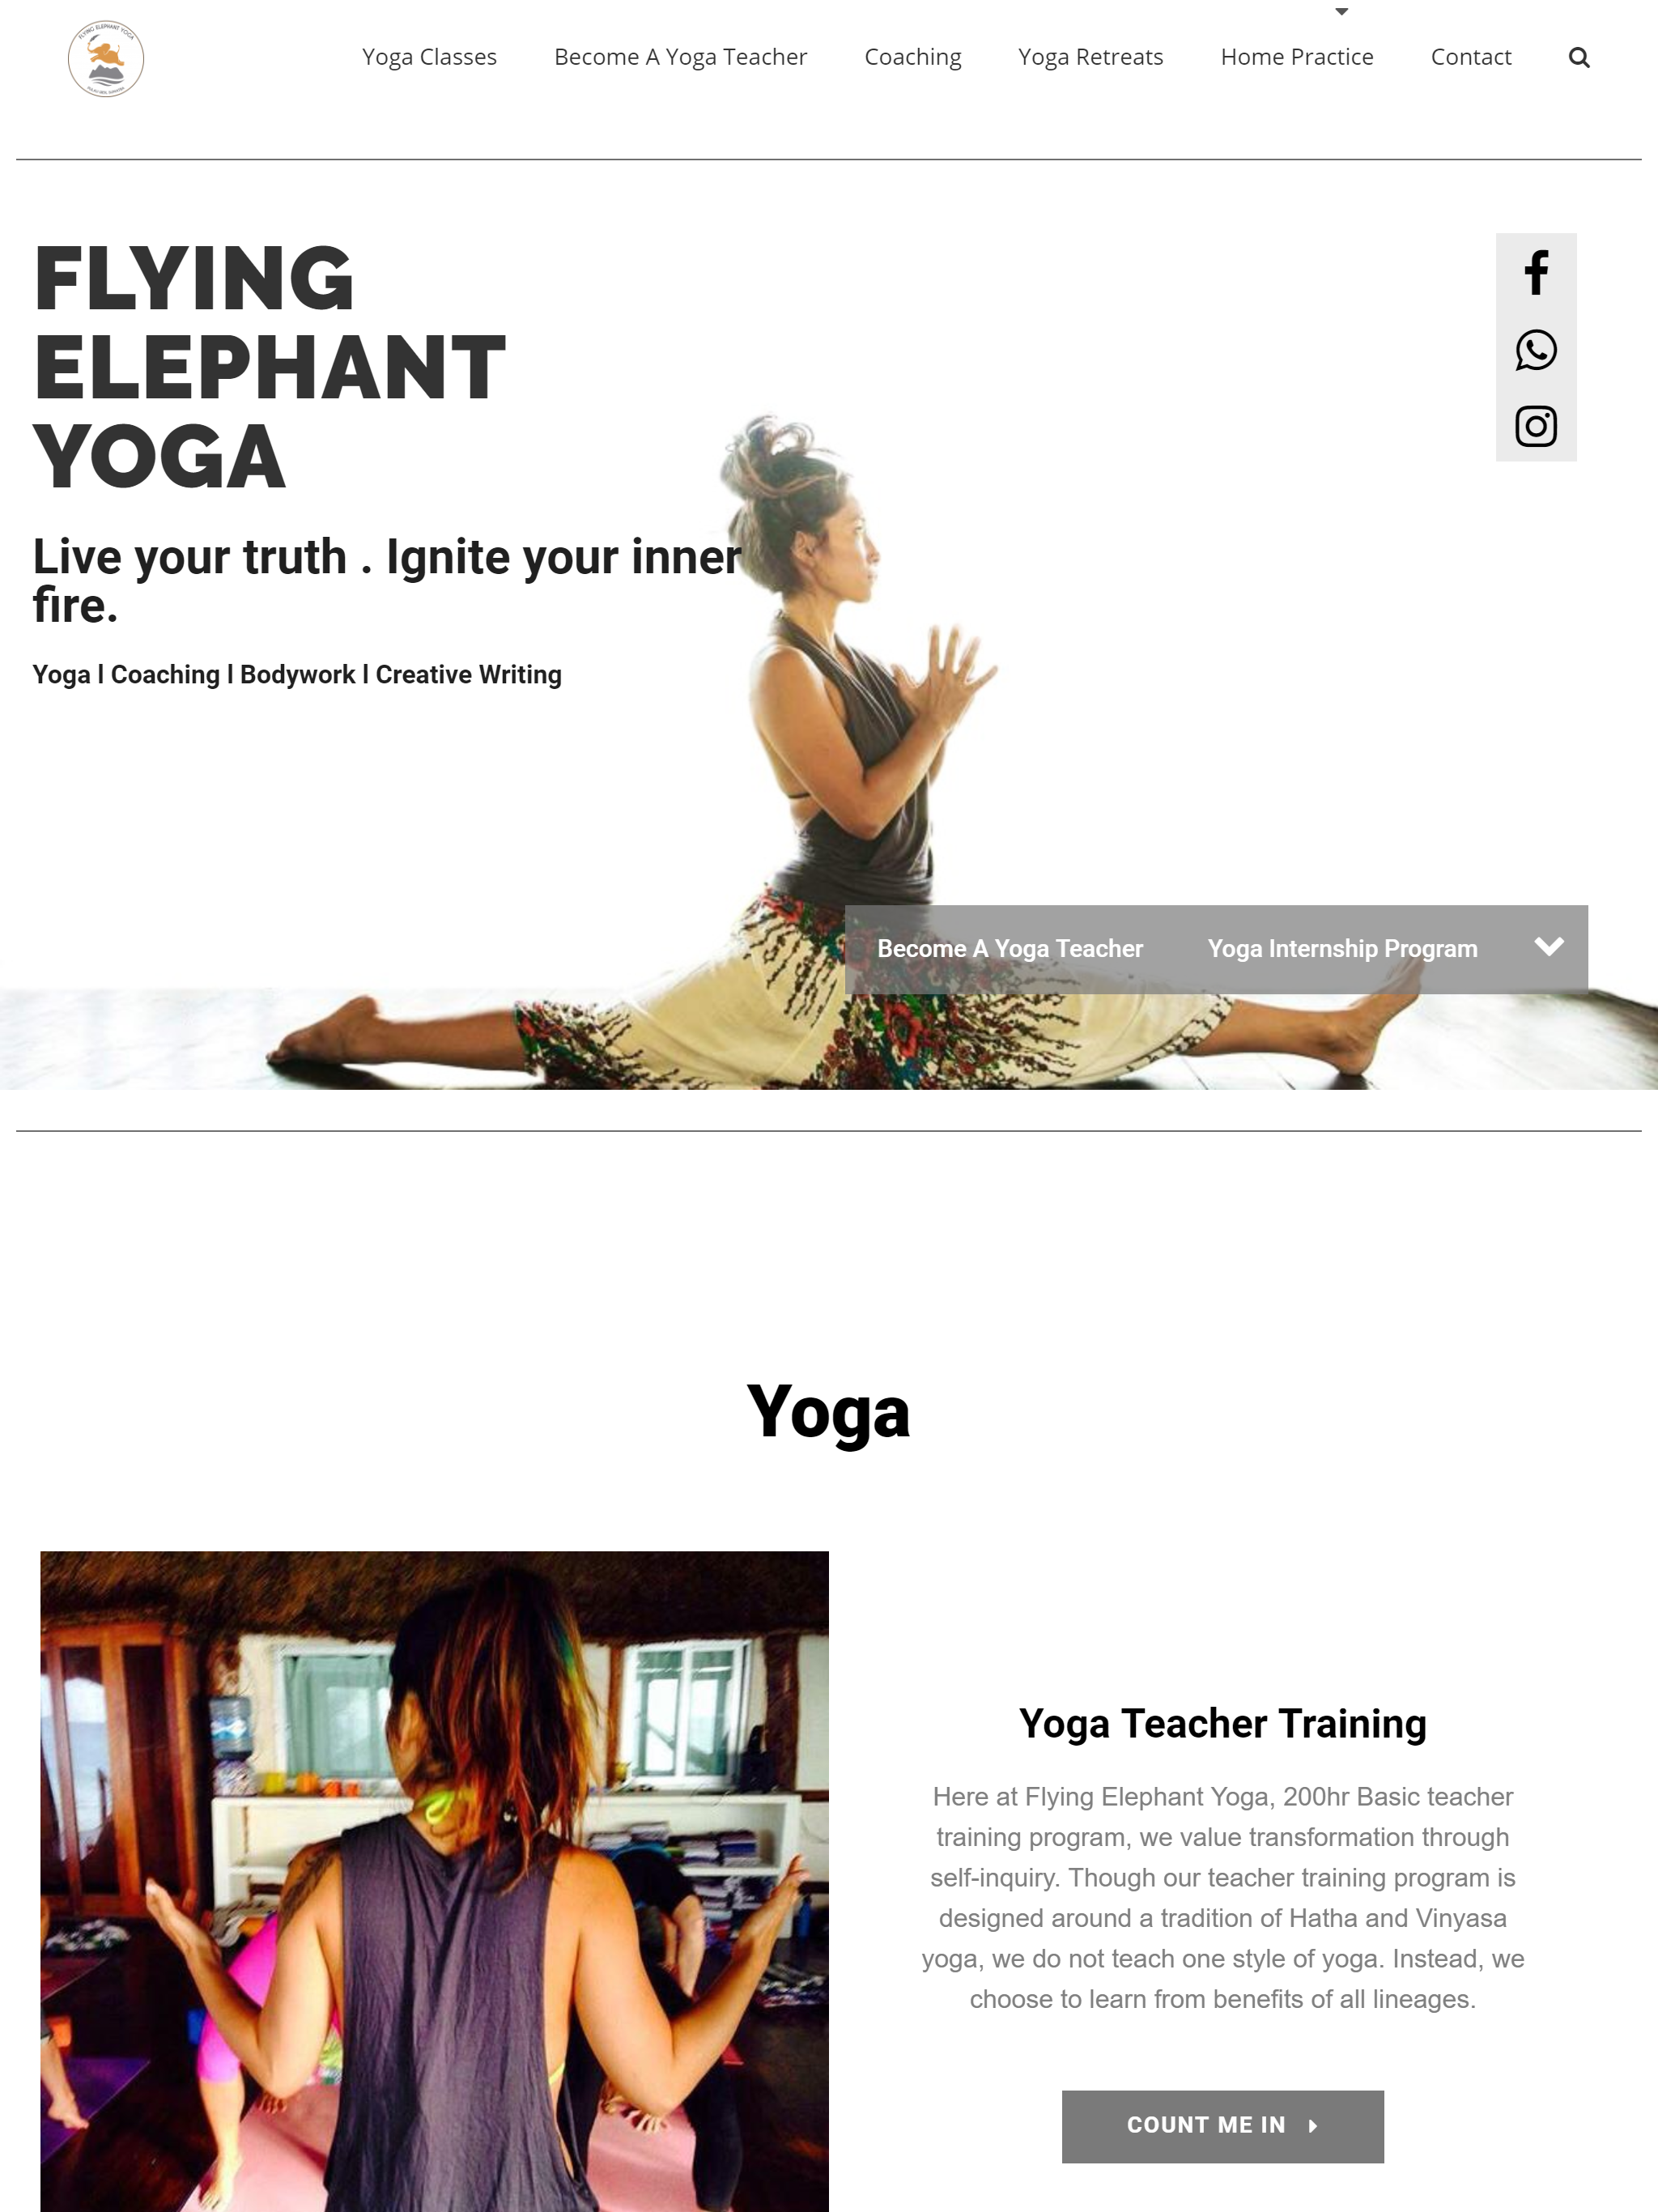 Flying Elephant Yoga